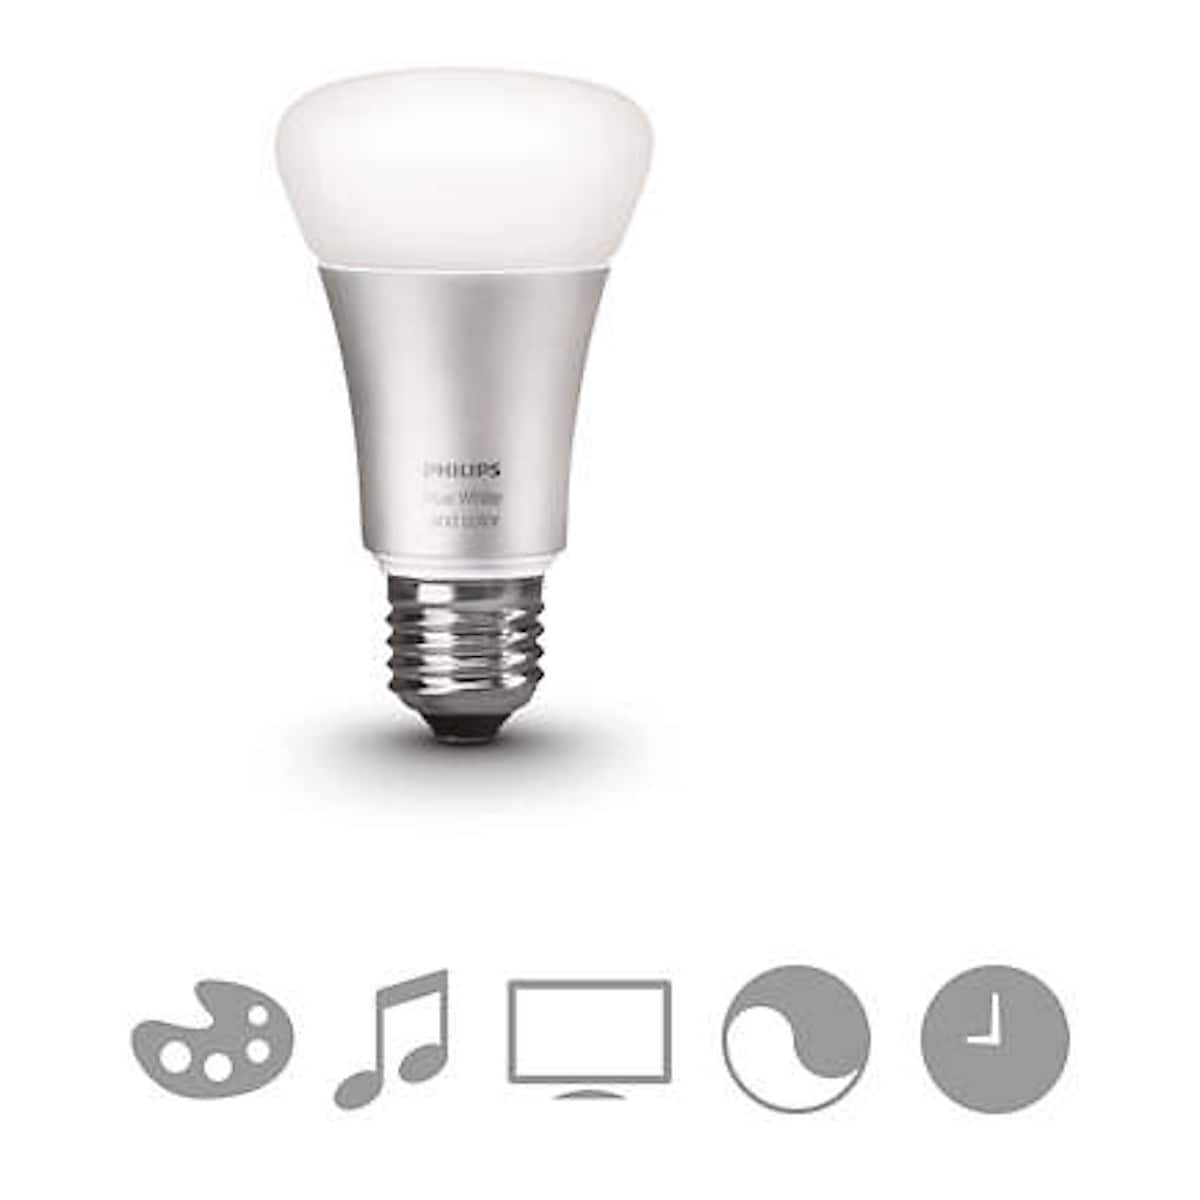 Philips Hue White and Color Ambiance LED-lampa E27